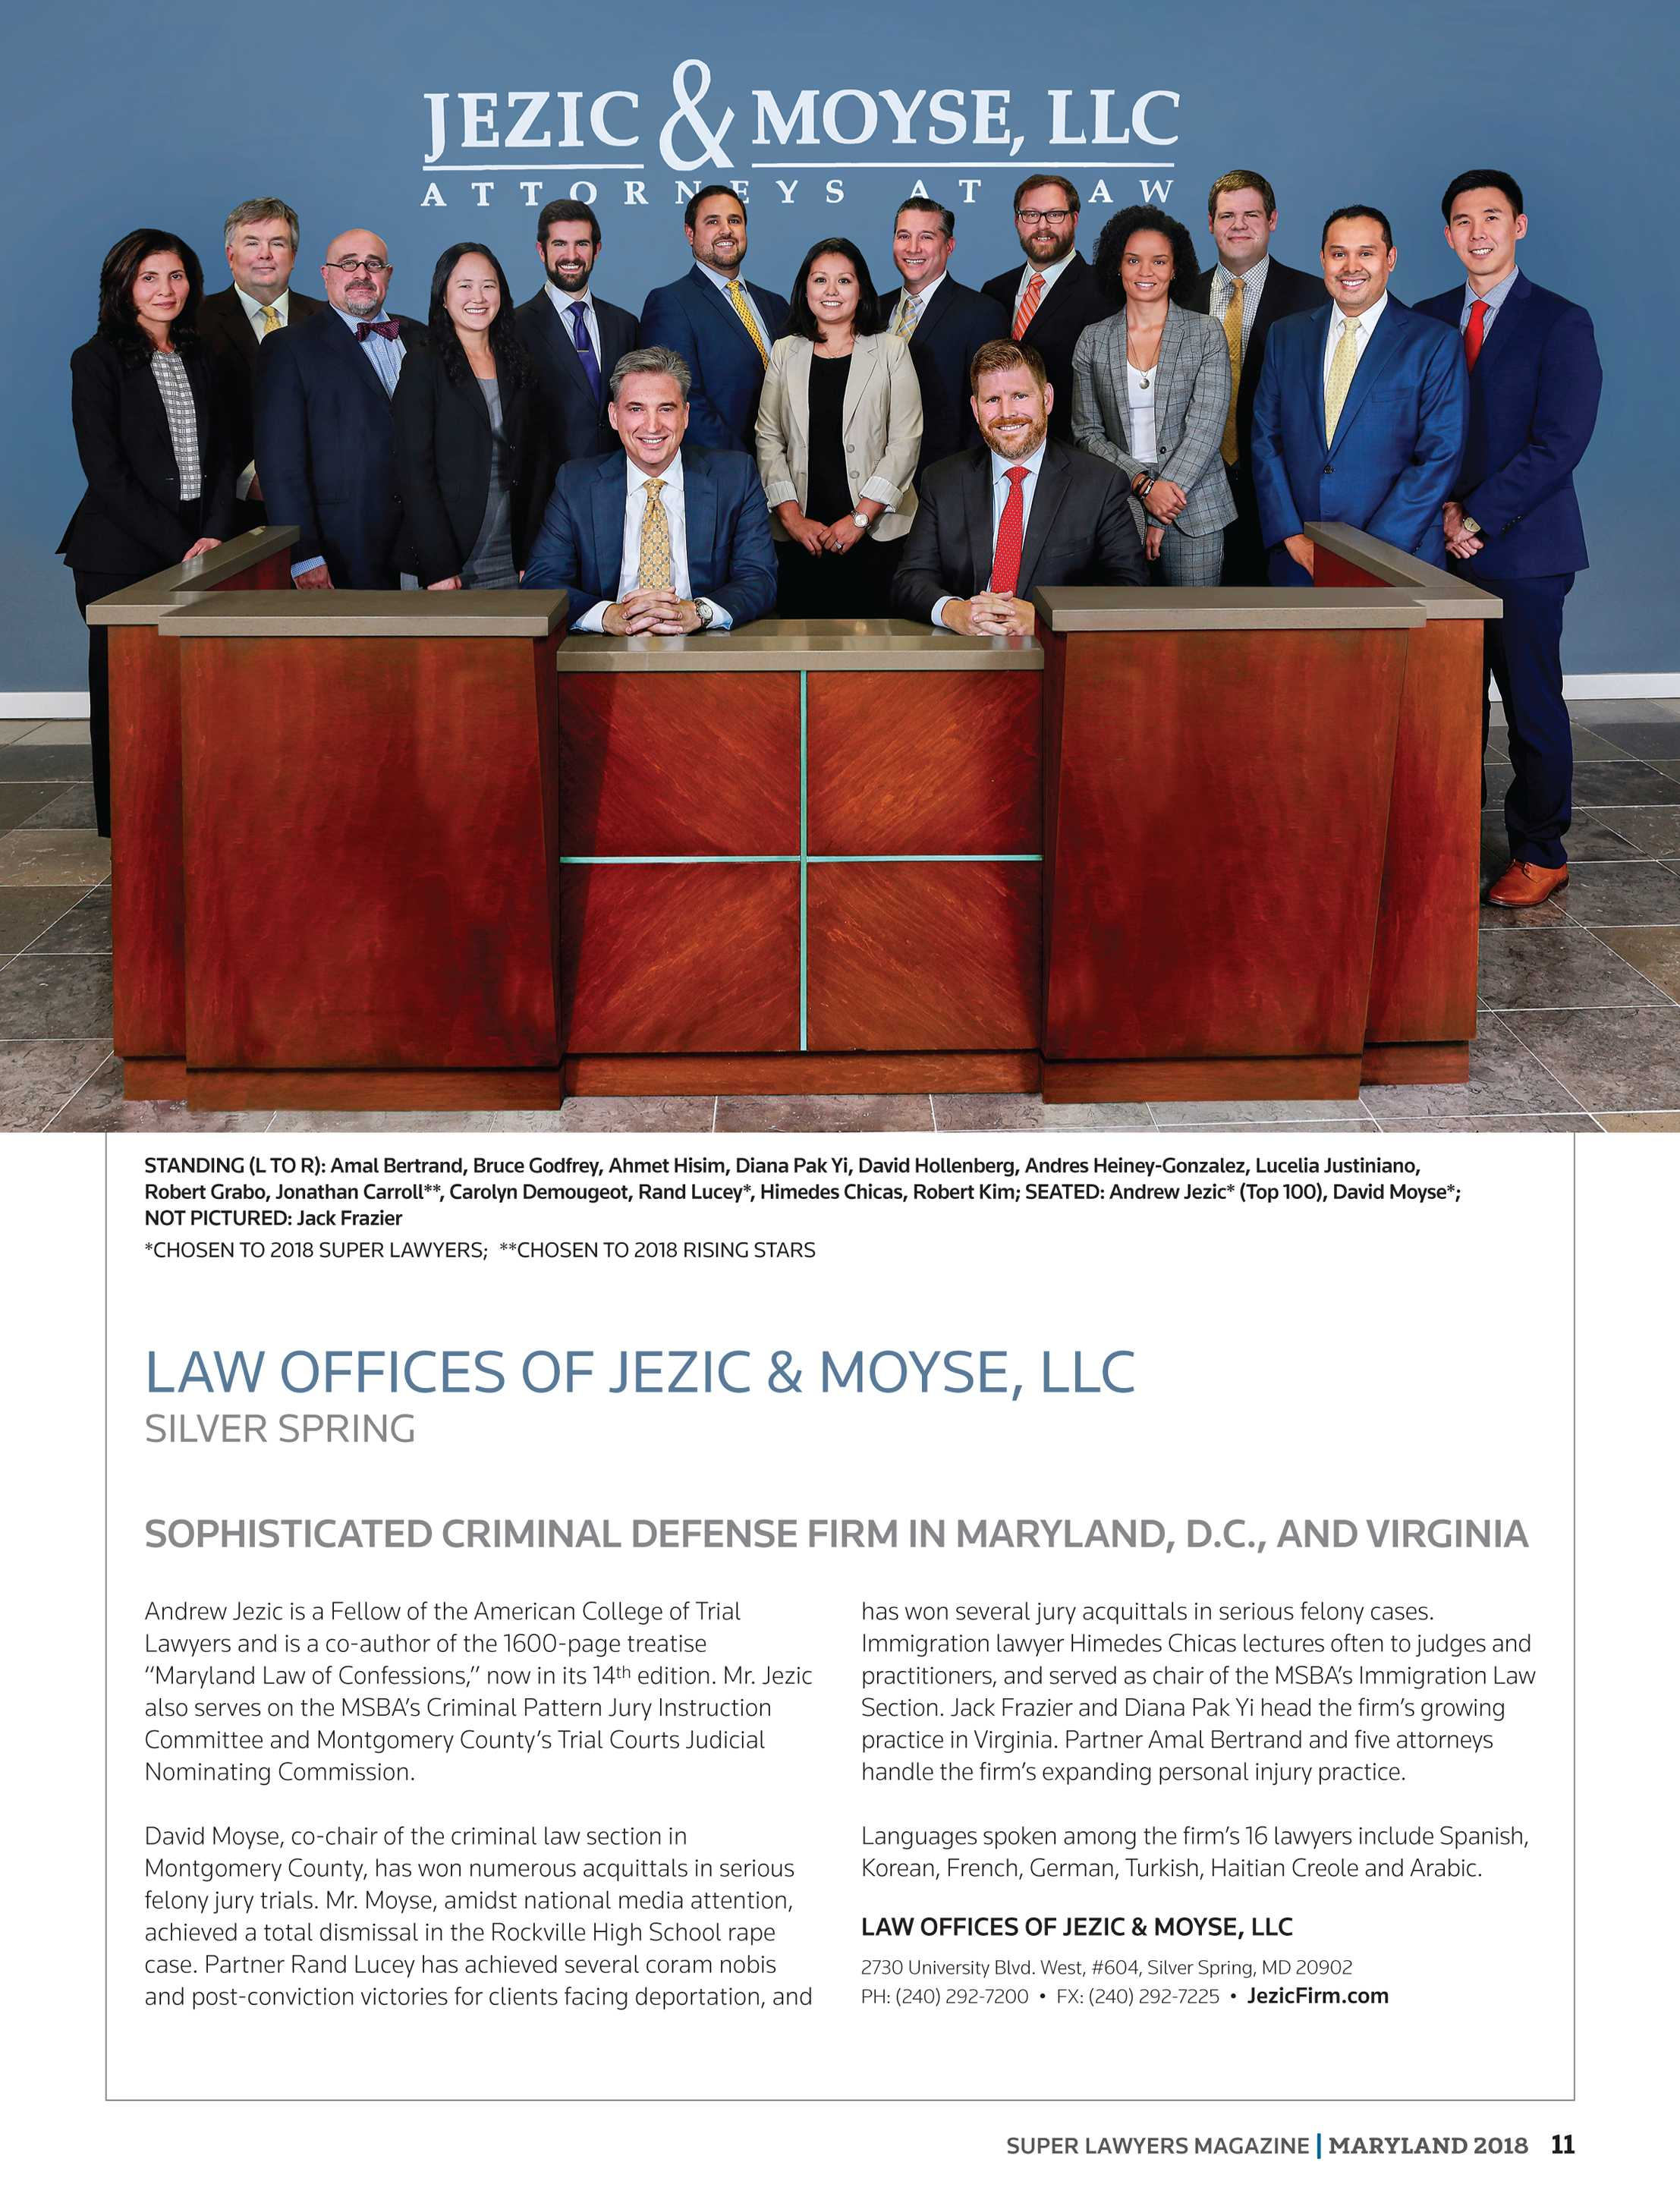 Super Lawyers Maryland 2018 Page 11